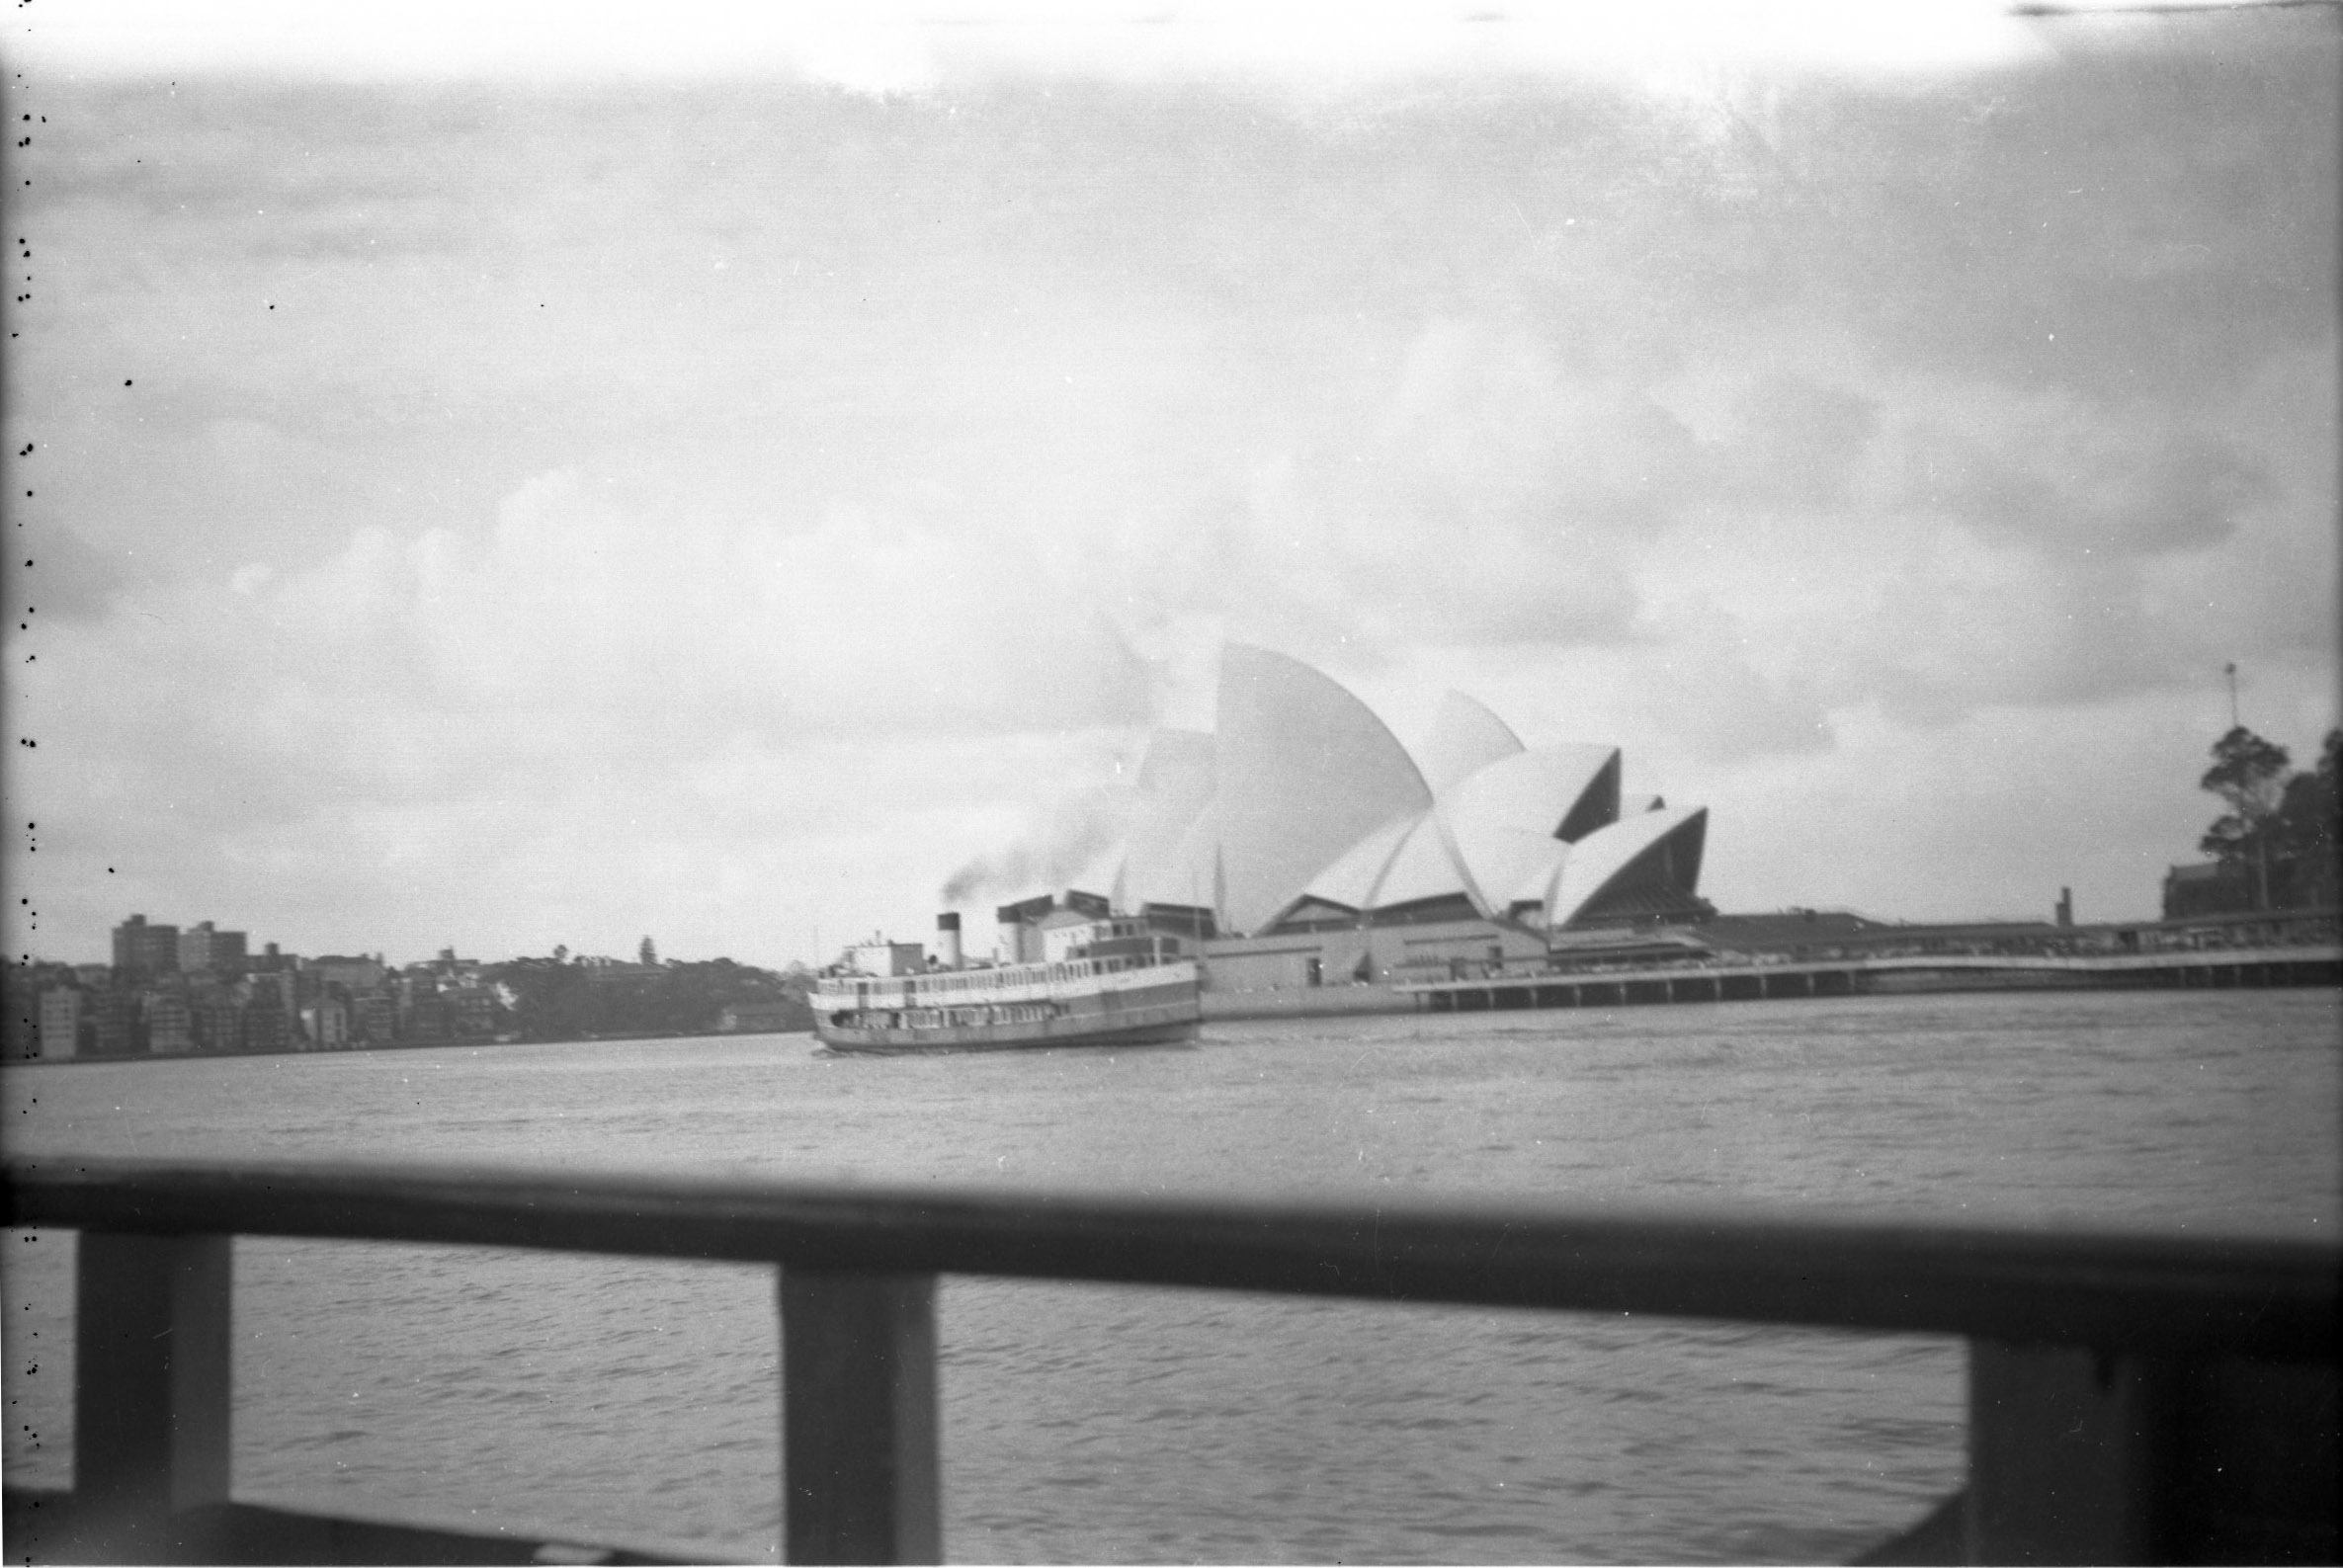 Sydney Opera House and Harbour. Date unknown.